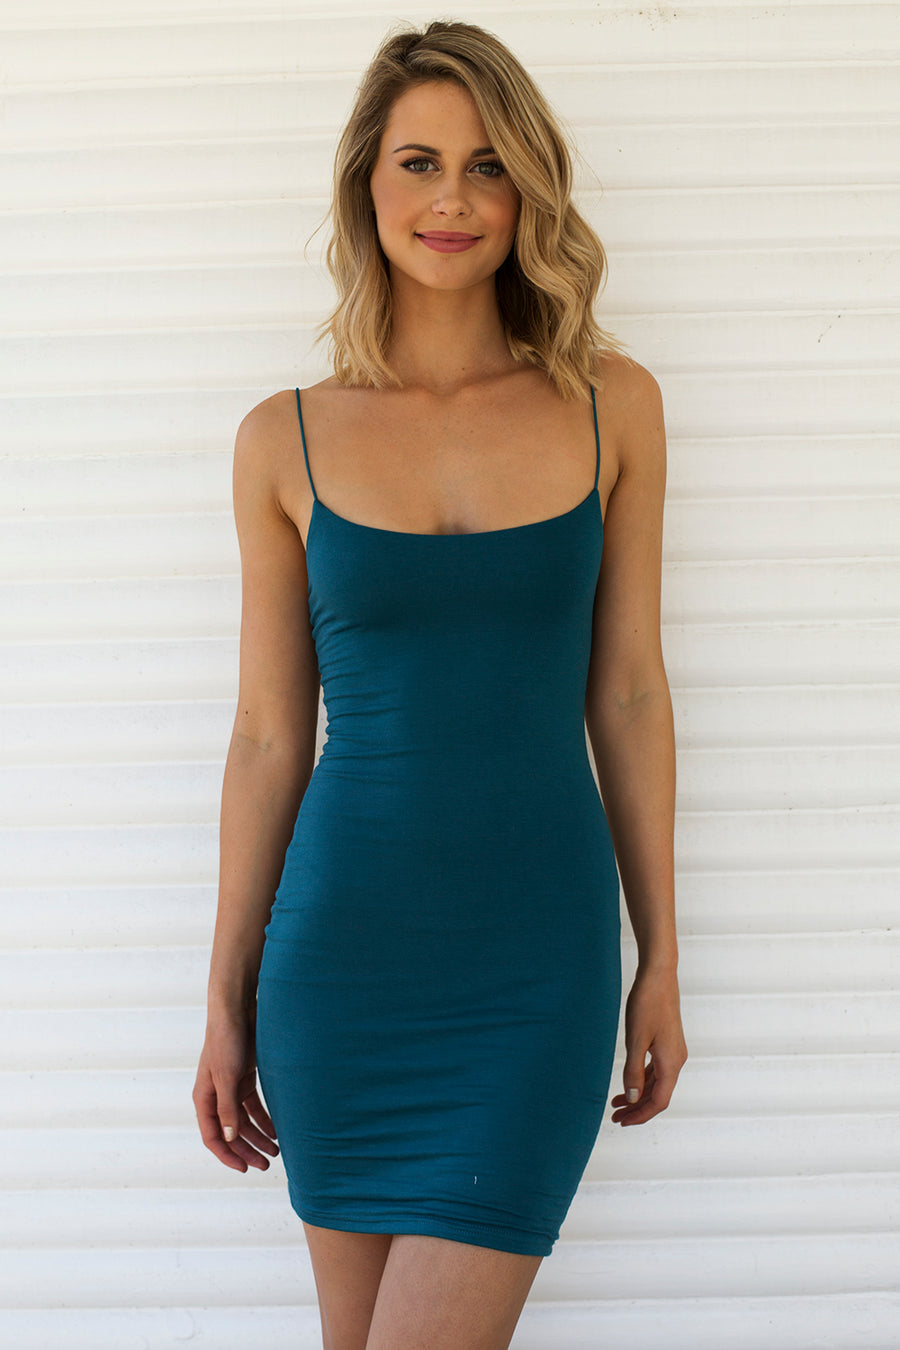 Hold Me Tight Slip Dress in Teal